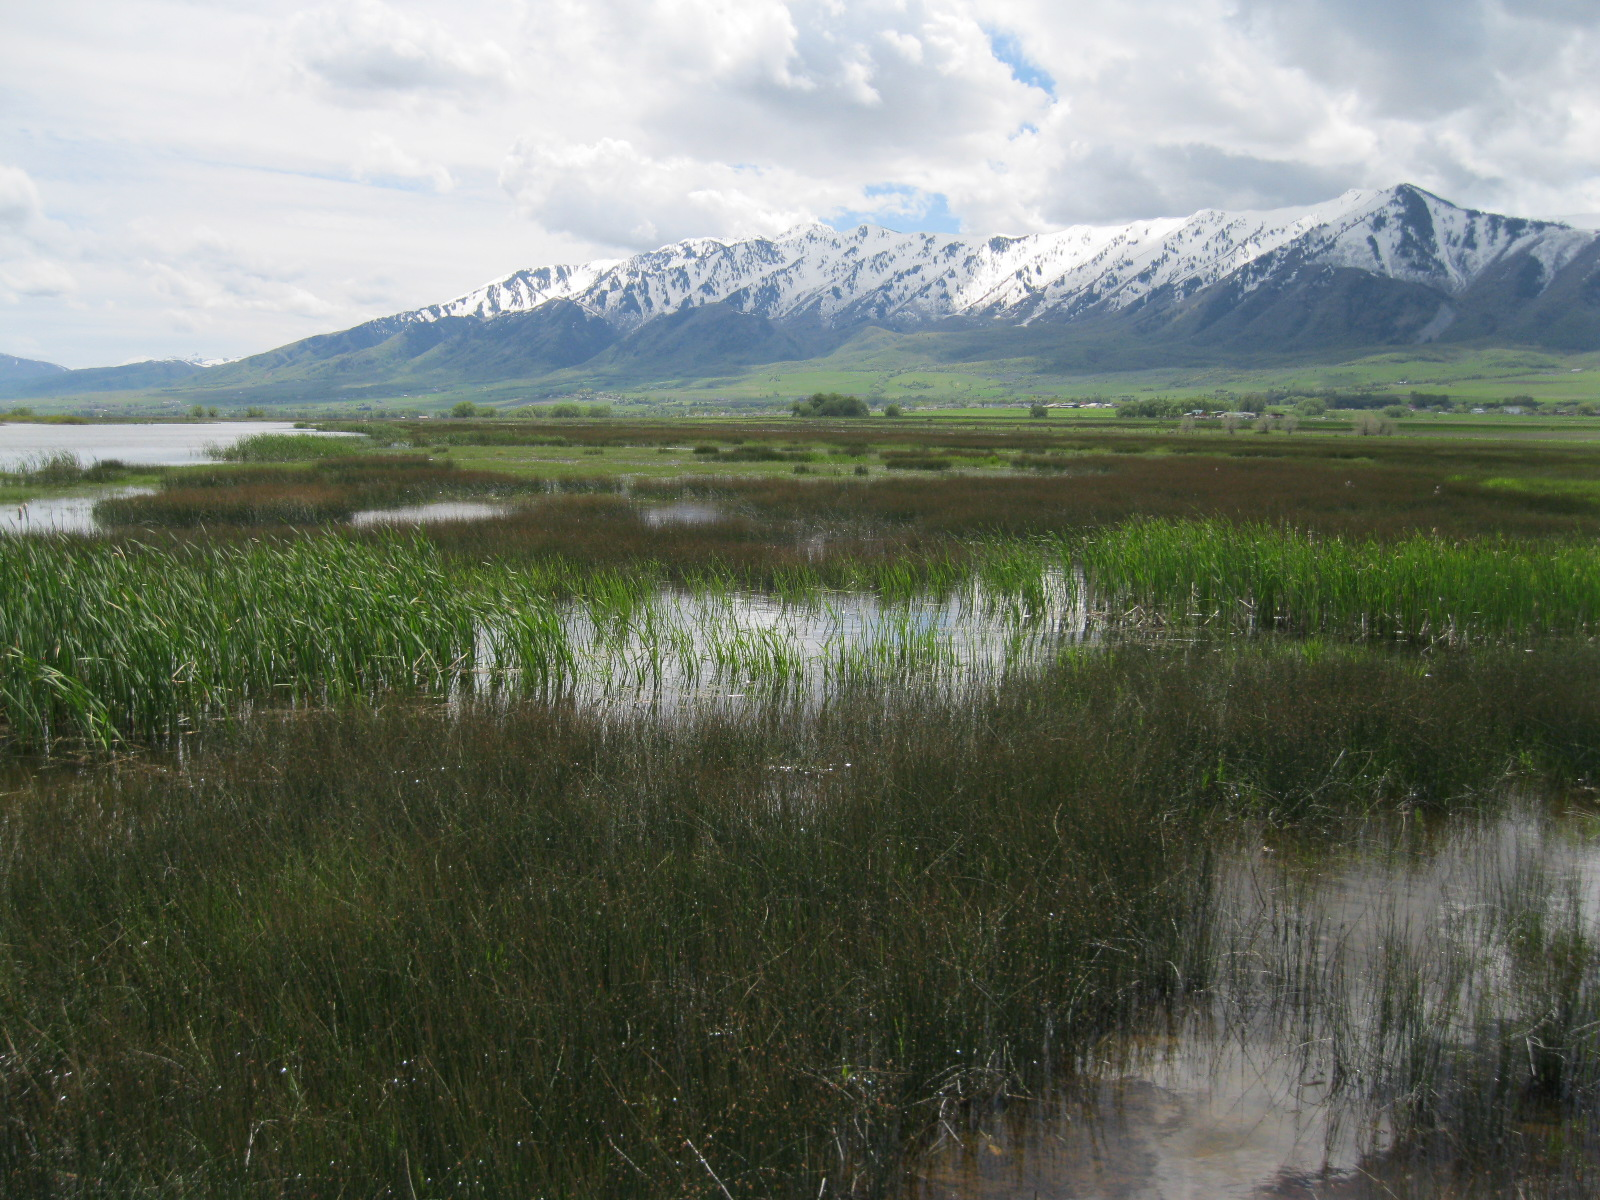 Identification And Mapping Of Jurisdictional Wetland Boundaries In Accordance With Us Army Corps Of Engineers Delineation Manuals And Technical Standards